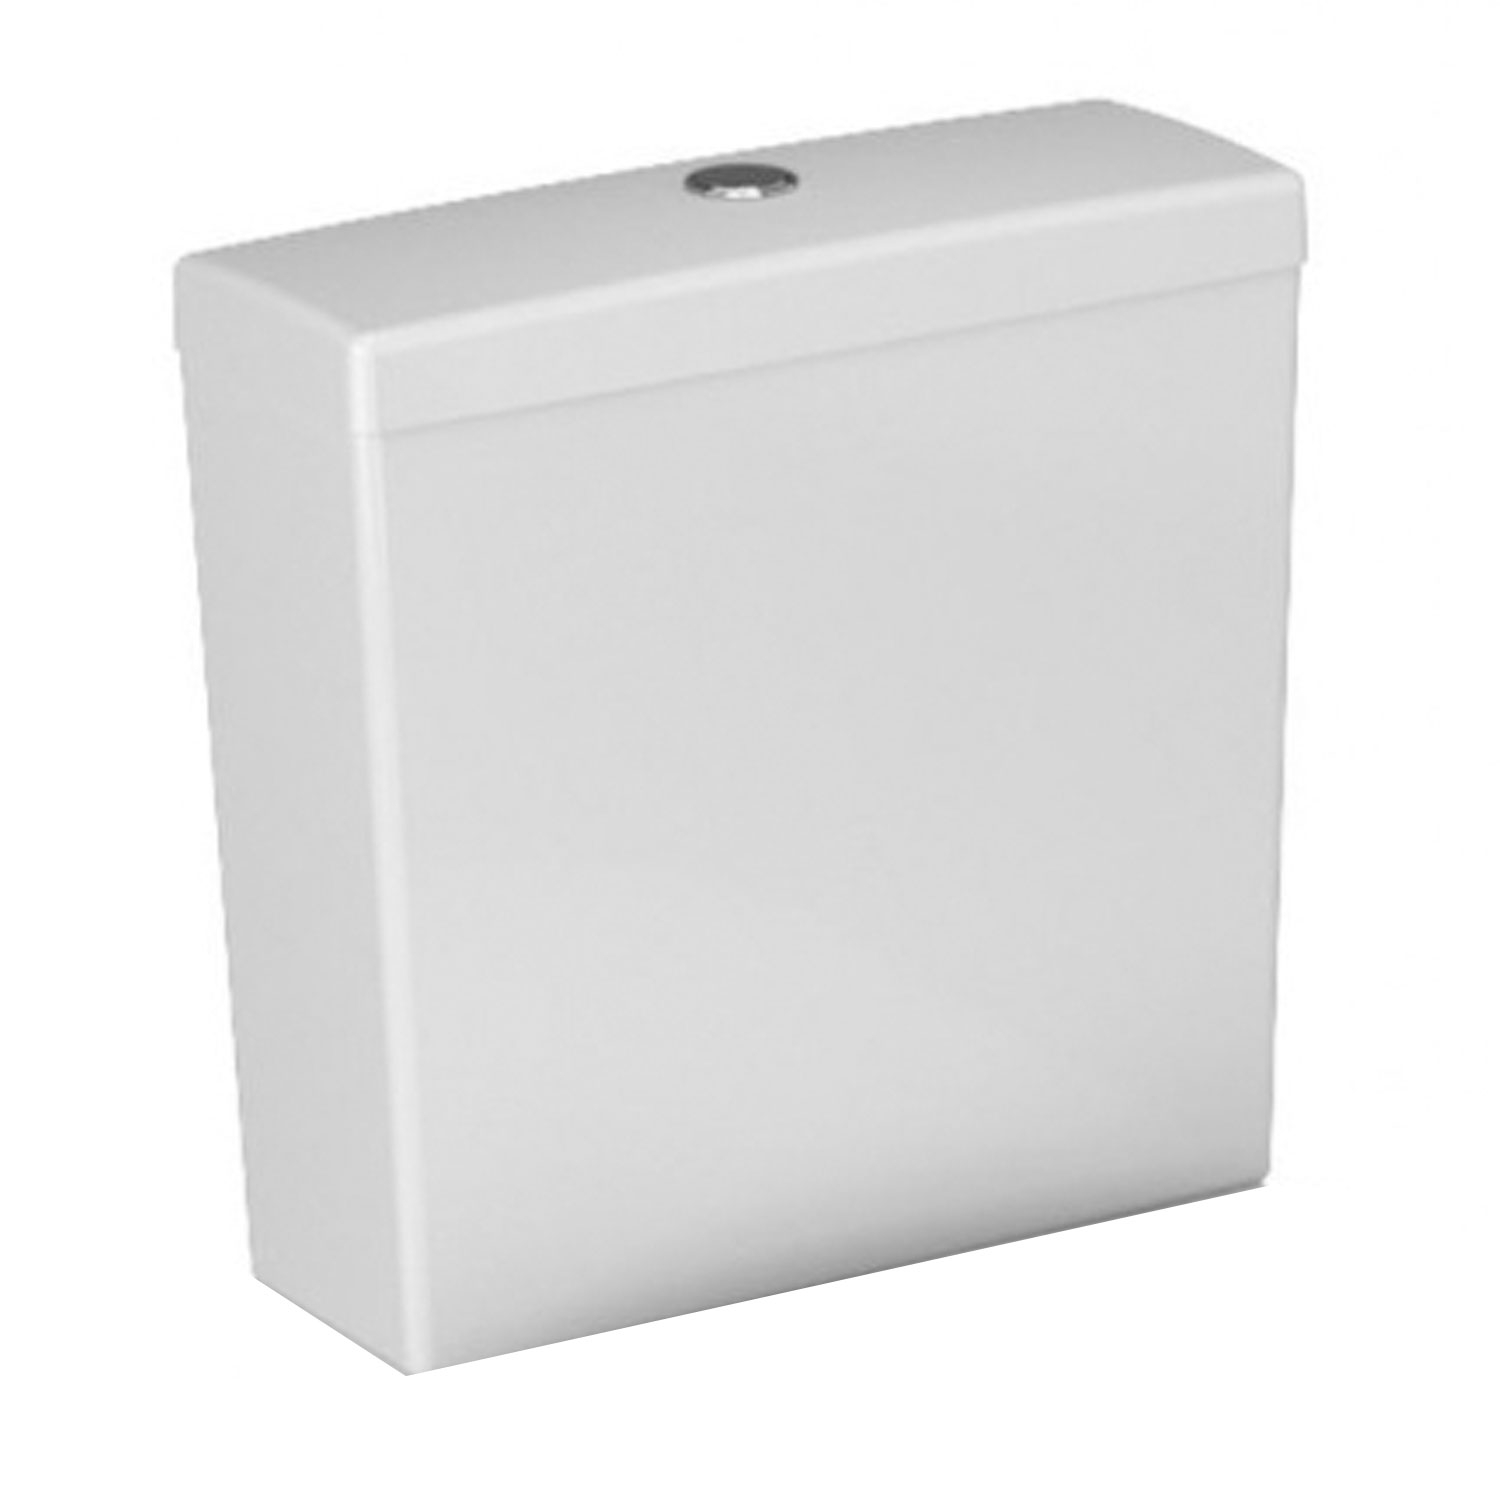 VitrA S50 Compact Close Coupled Toilet WC Push Button Cistern - Soft Close Seat